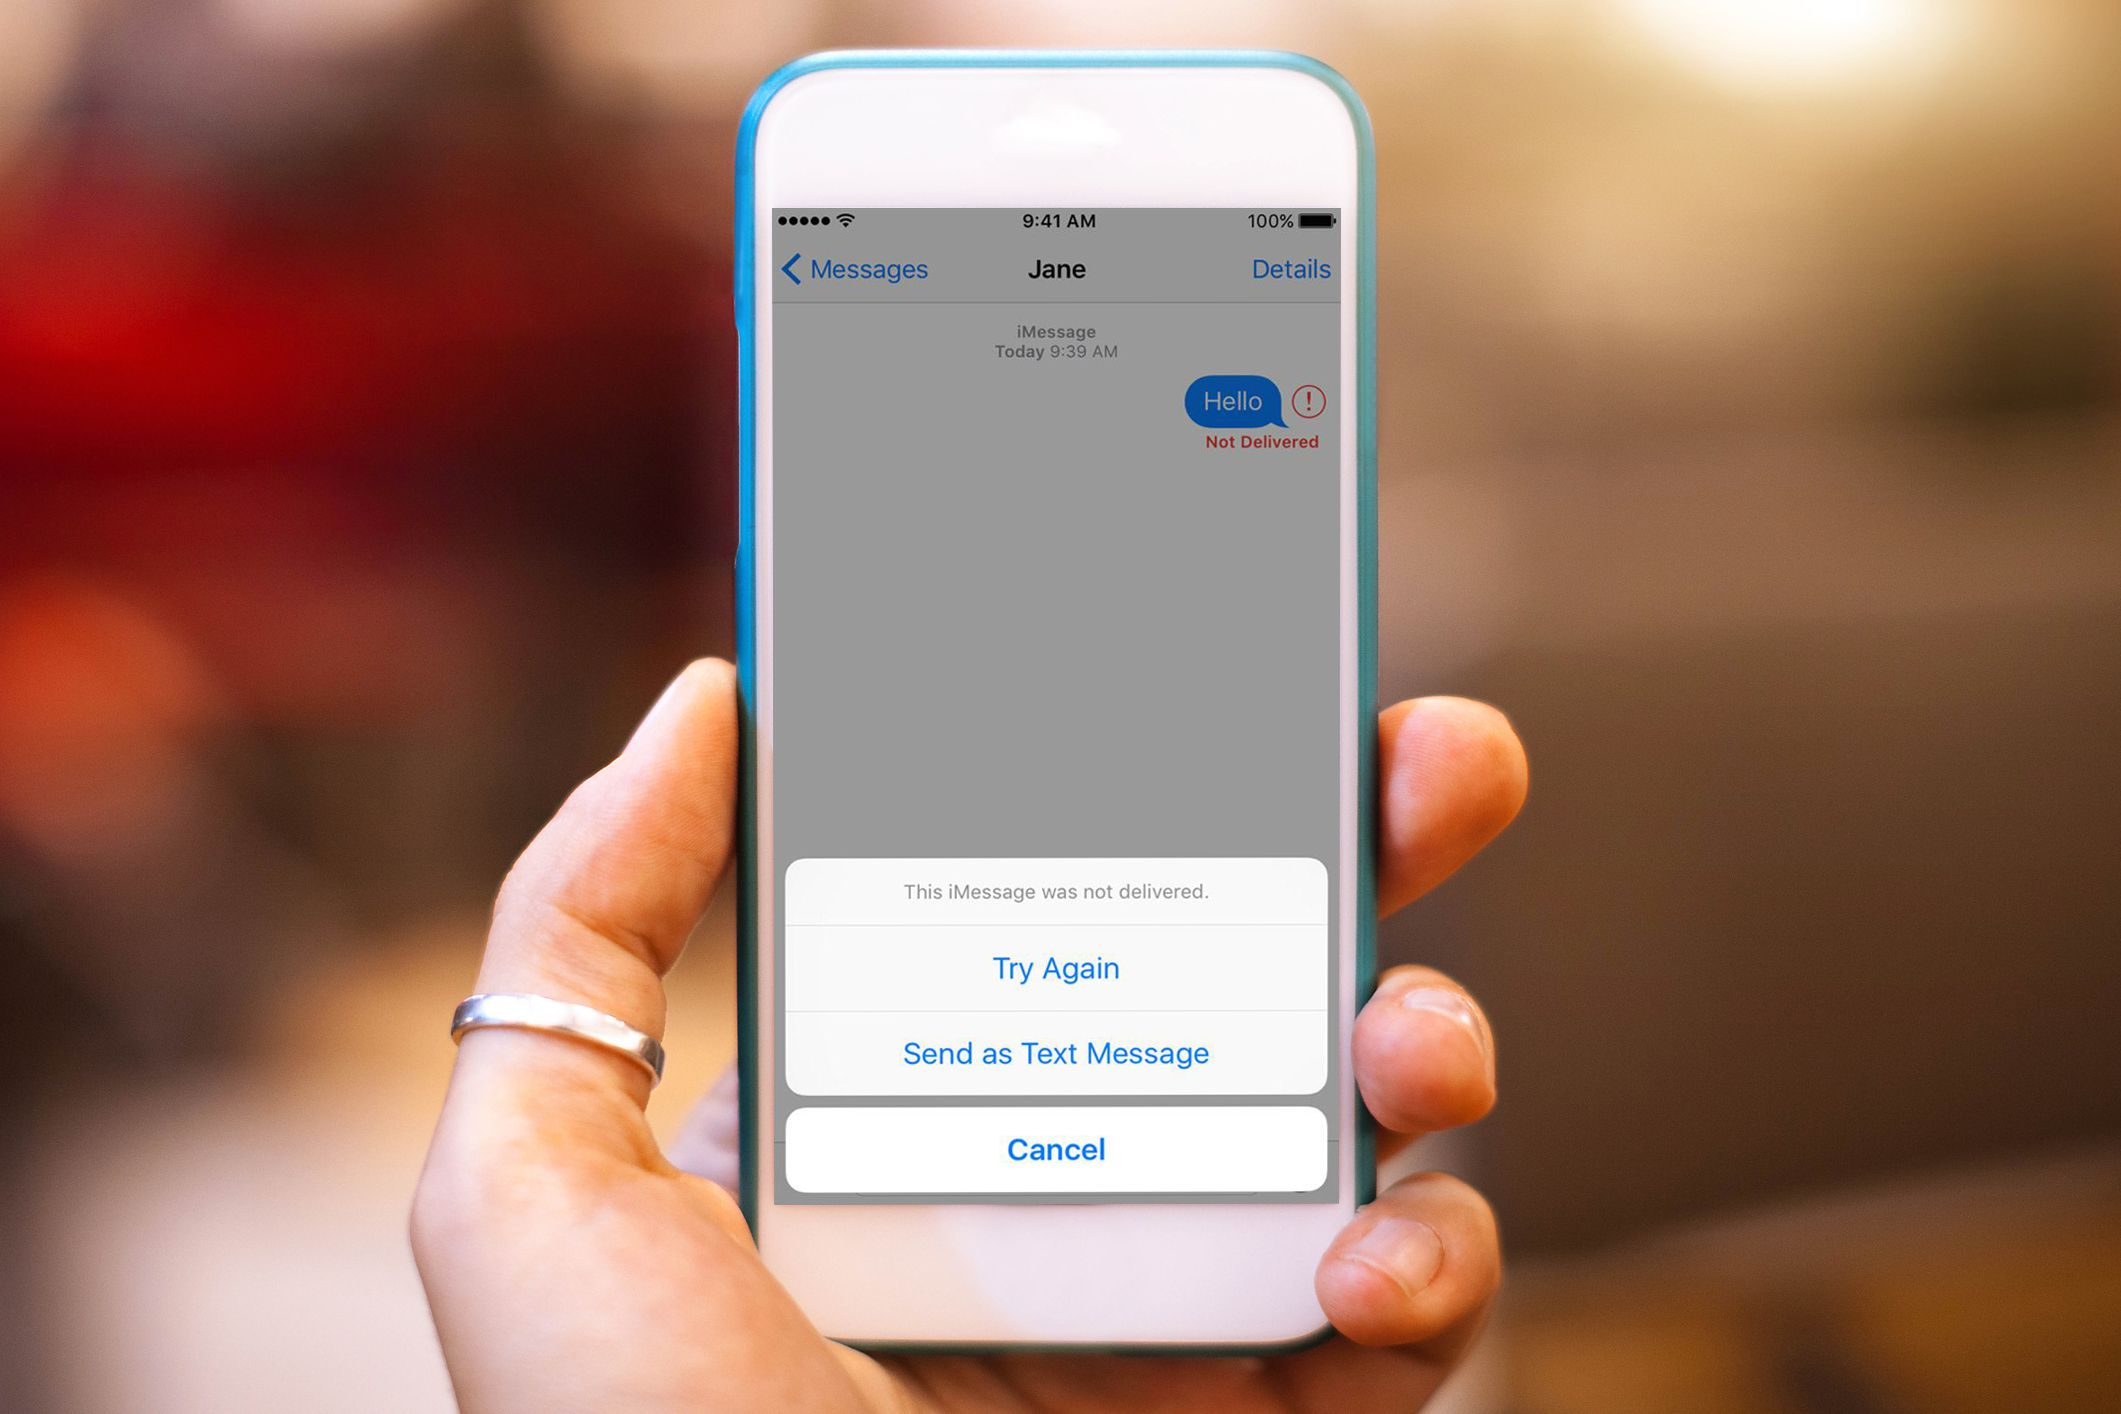 8 Ways to Fix iPhone not Sending or Receiving Text Messages Problems